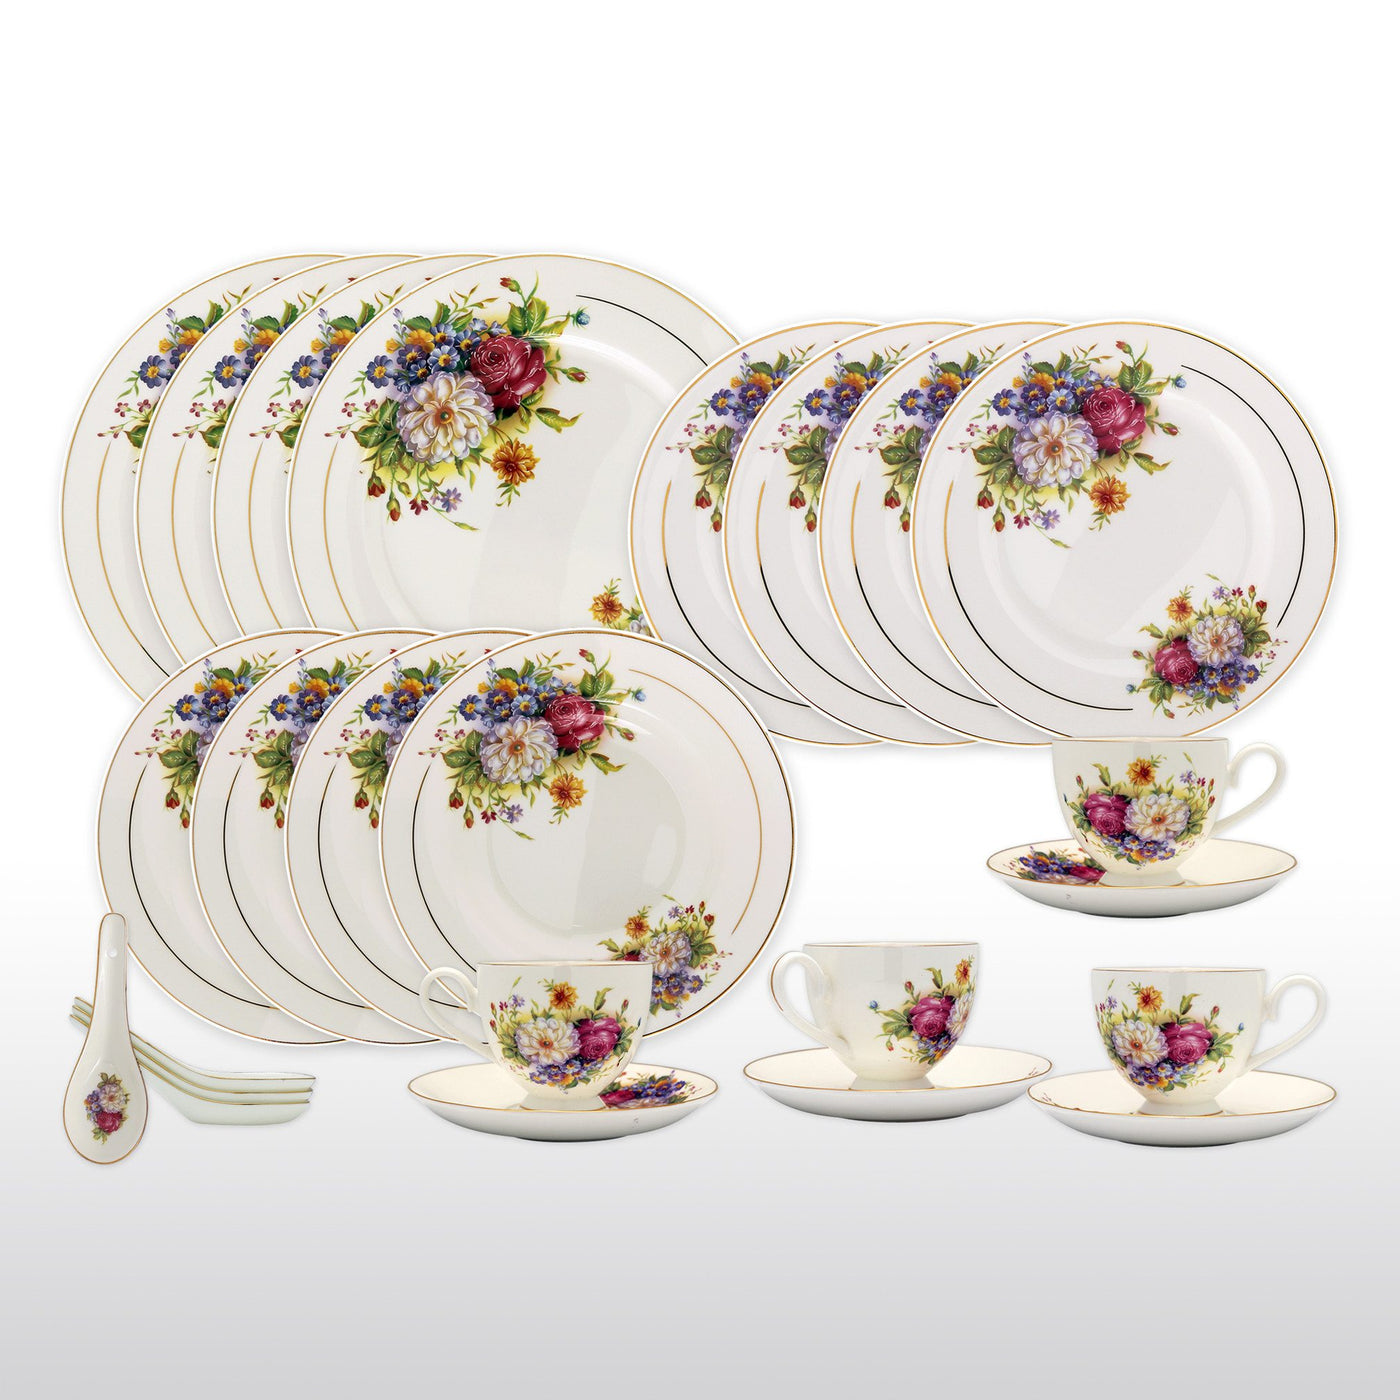 Dinnerwares - Bone China 24 Piece Dinnerware Set Colorful Blossom And Gold Rims Service For ...  sc 1 st  Homenique.net & Fine Bone China Dinnerware Sets - 24 Piece Service for 4 in Floral ...